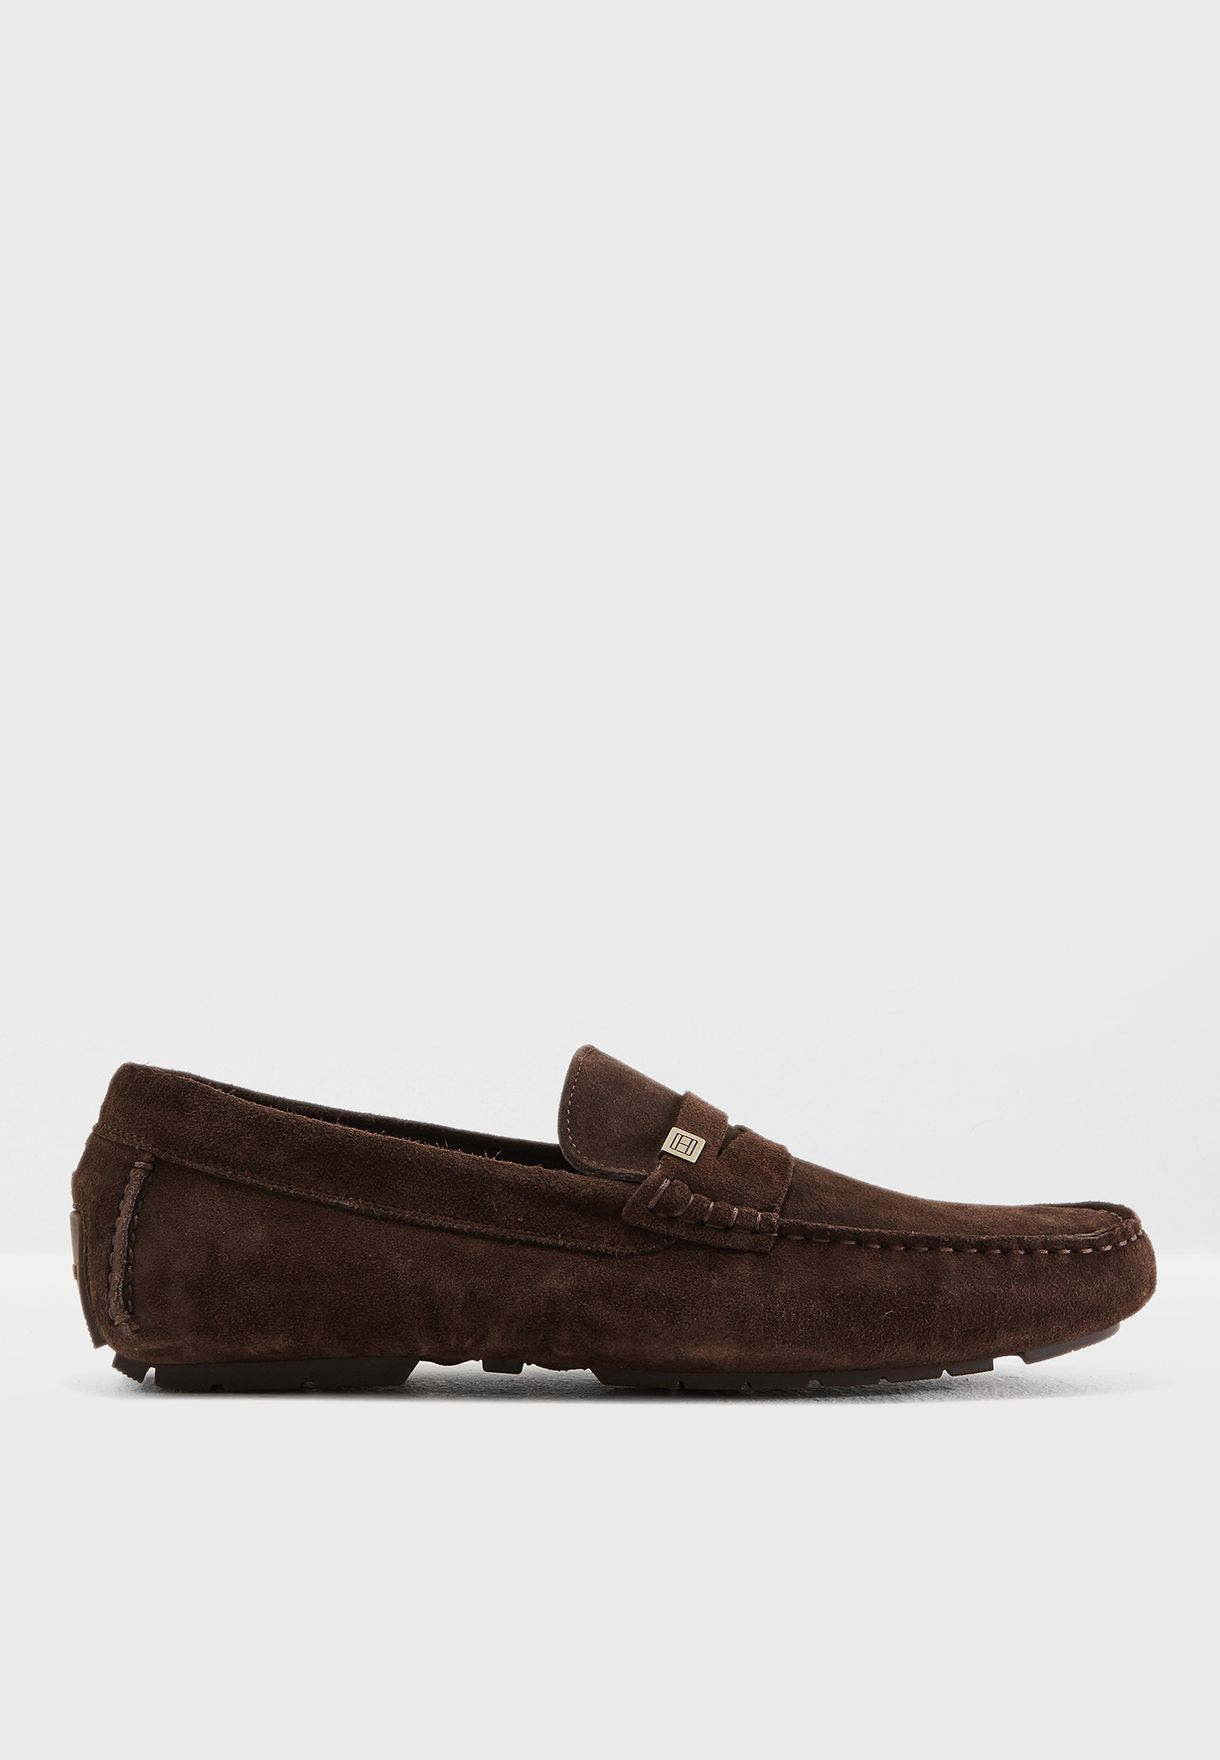 0c39625af Shop Tommy Hilfiger browns Seasonal Hardware Suede Loafers ...